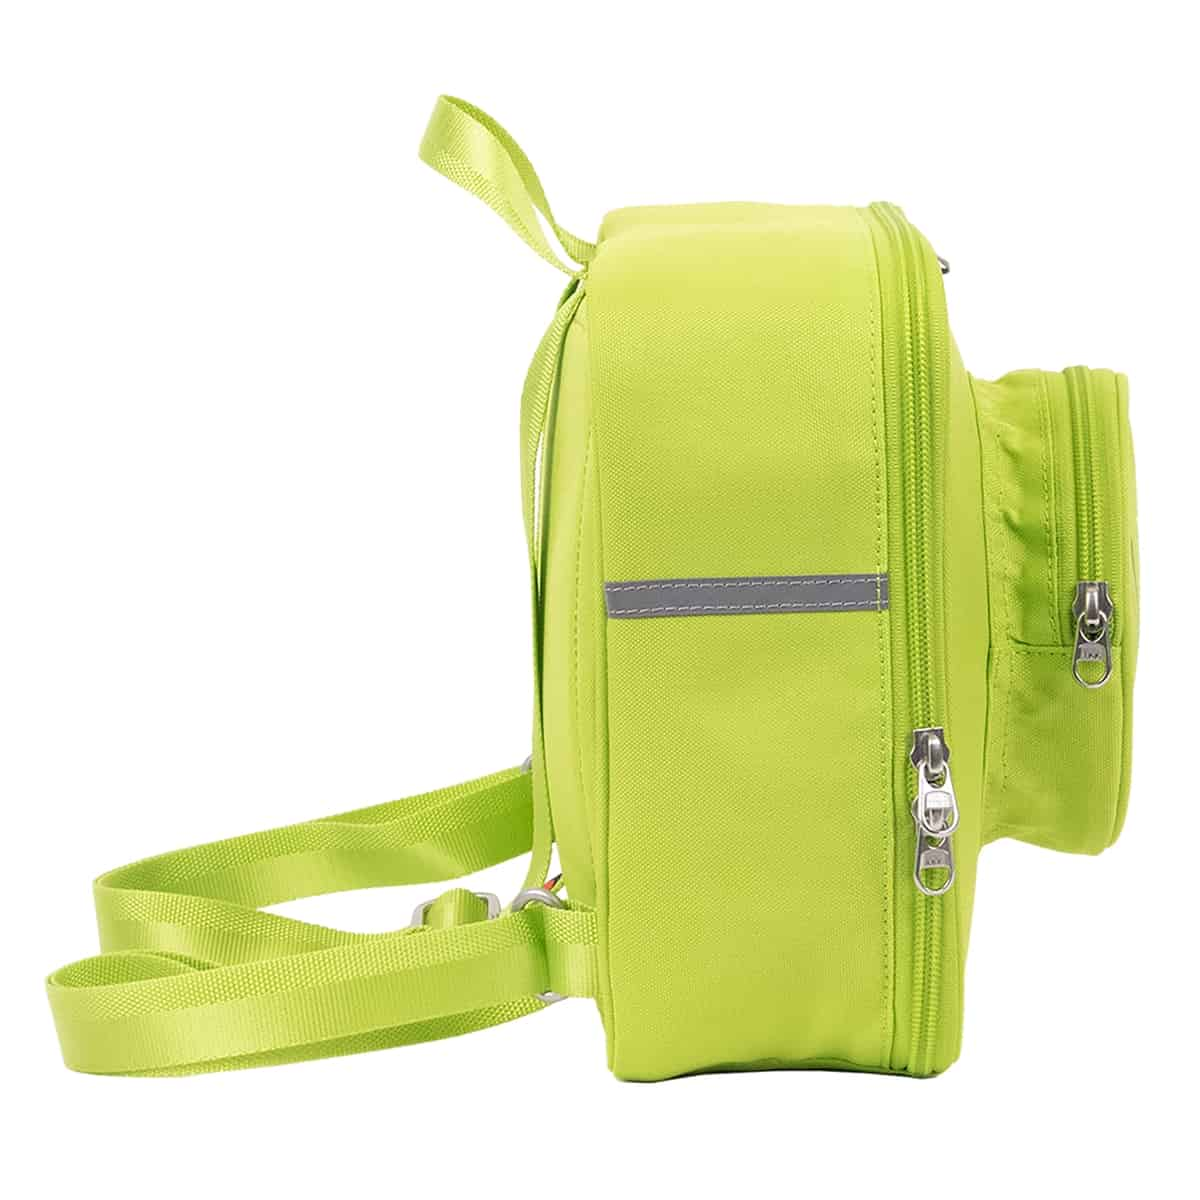 lego 5006496 lime small brick backpack